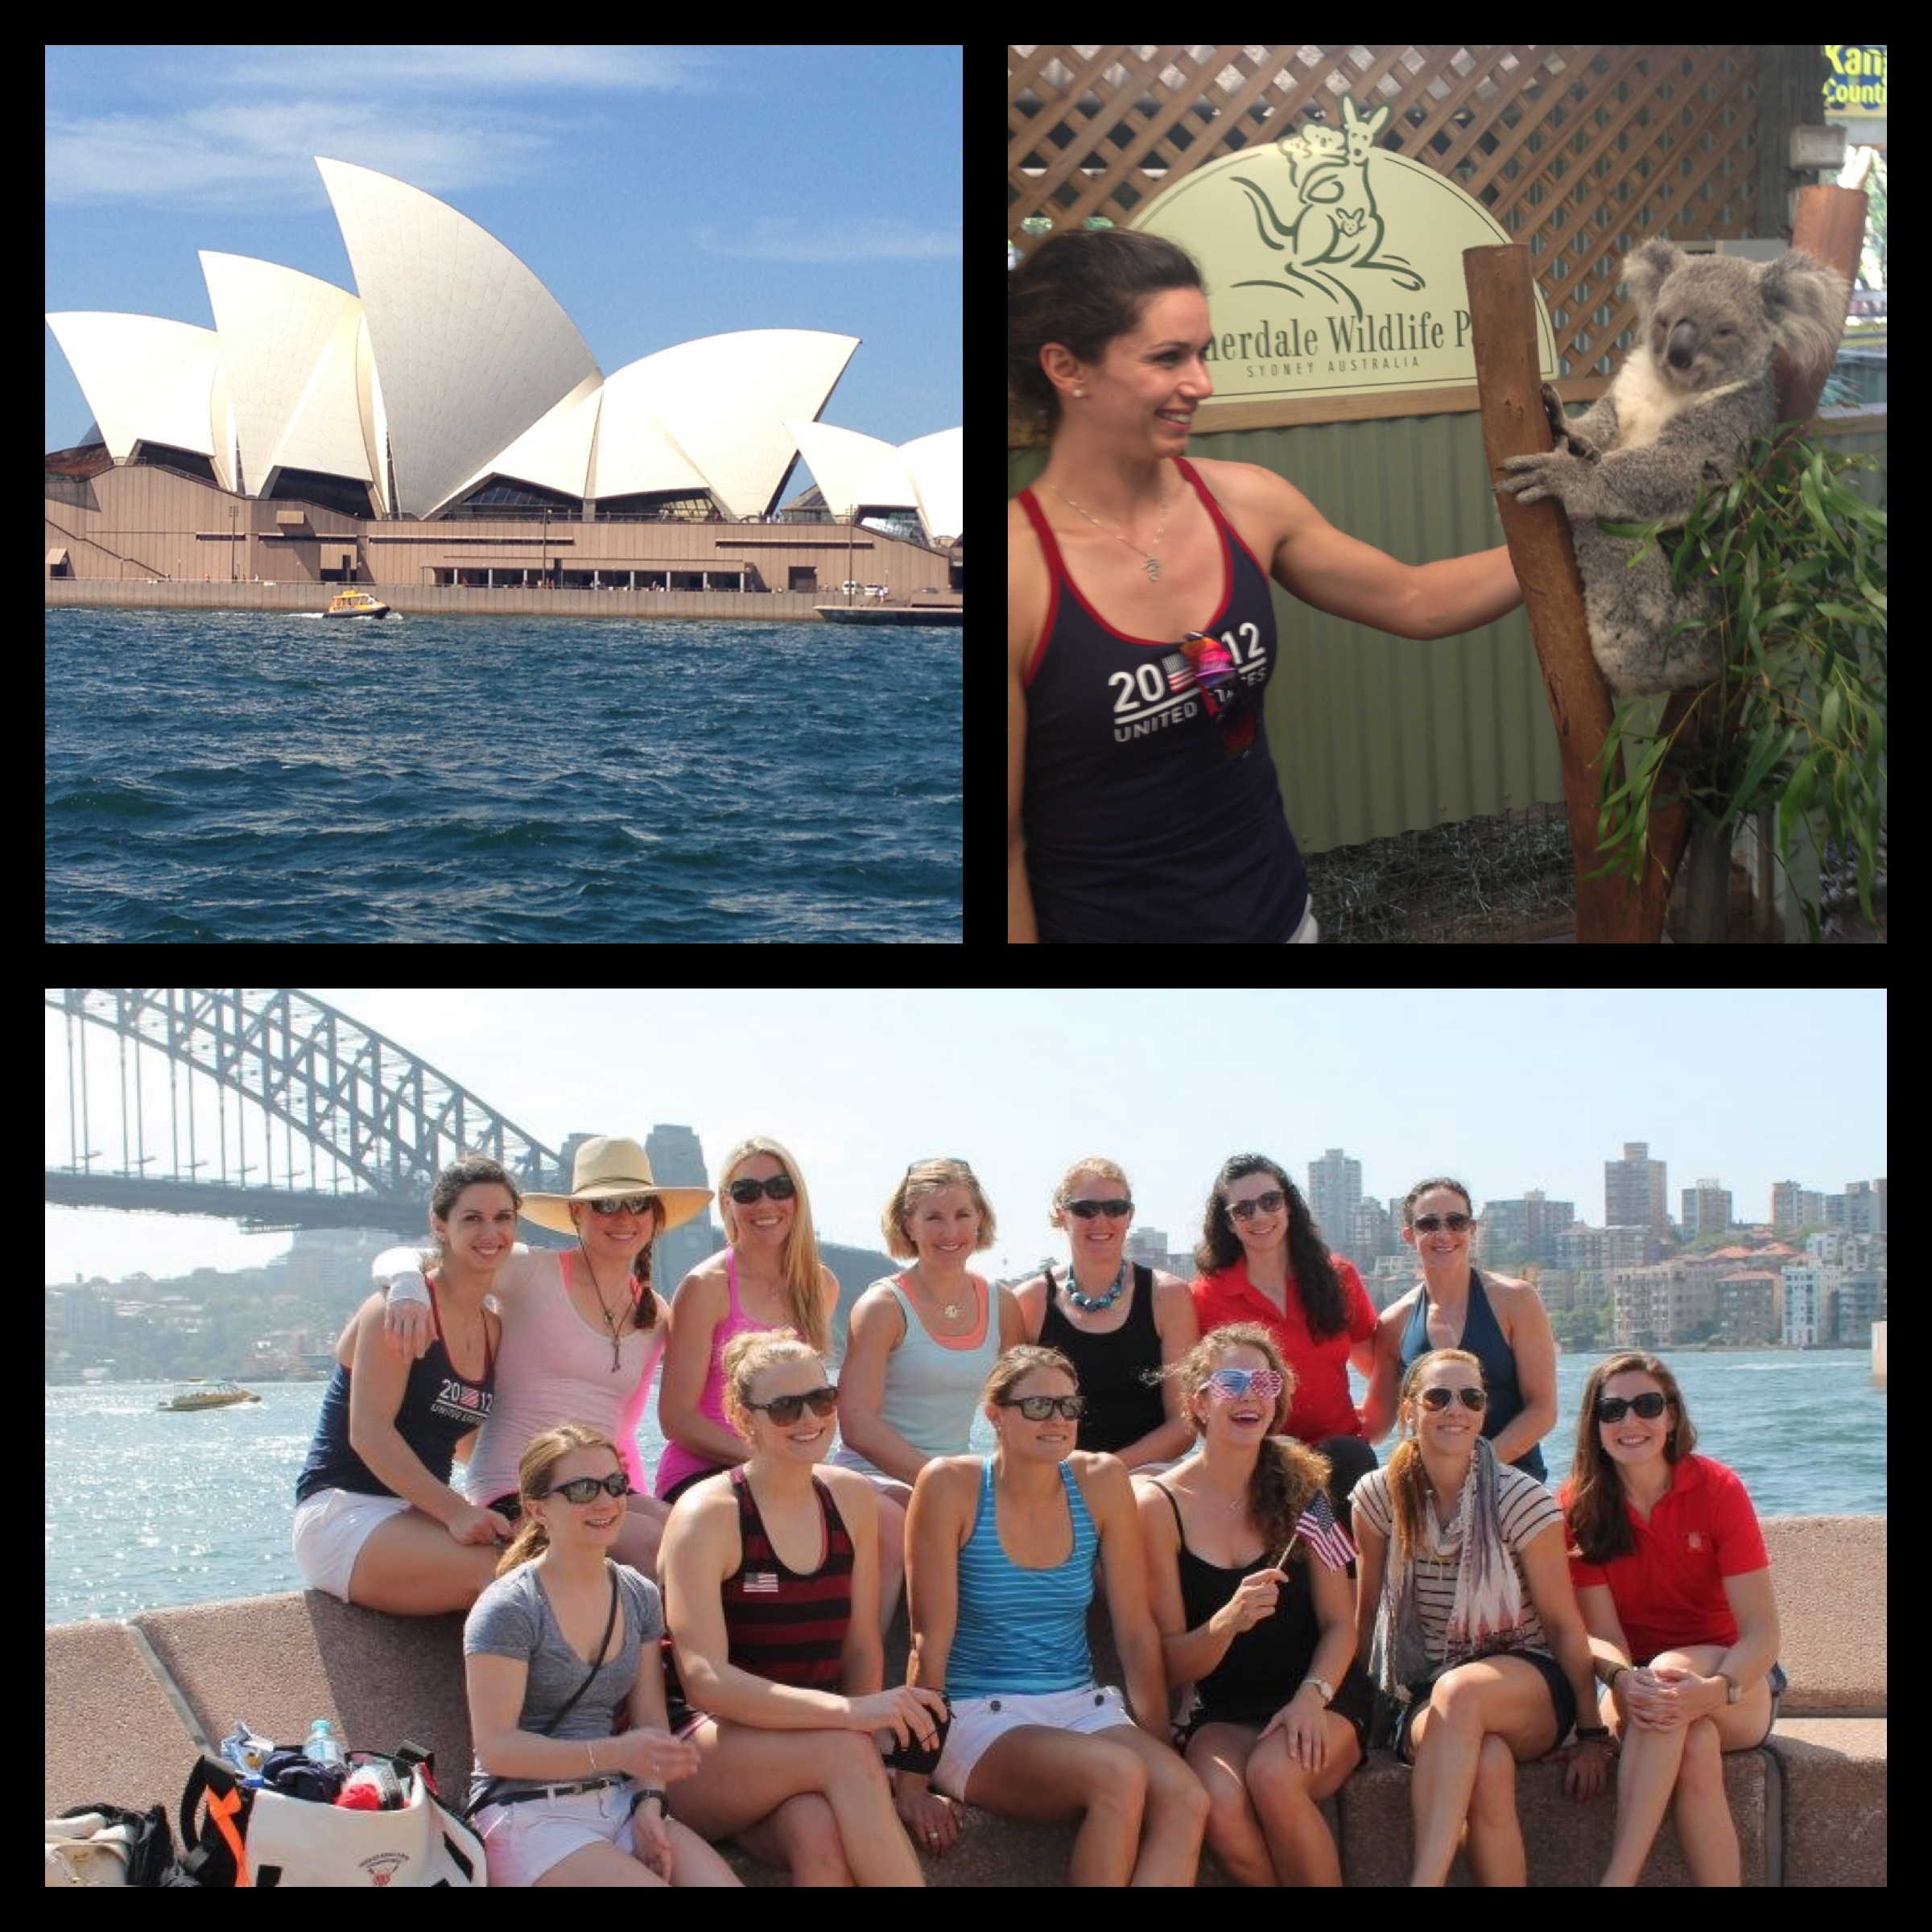 SMACK! At The Races: Sara Hendershot's Experience At The Rowing World Cup In Australia